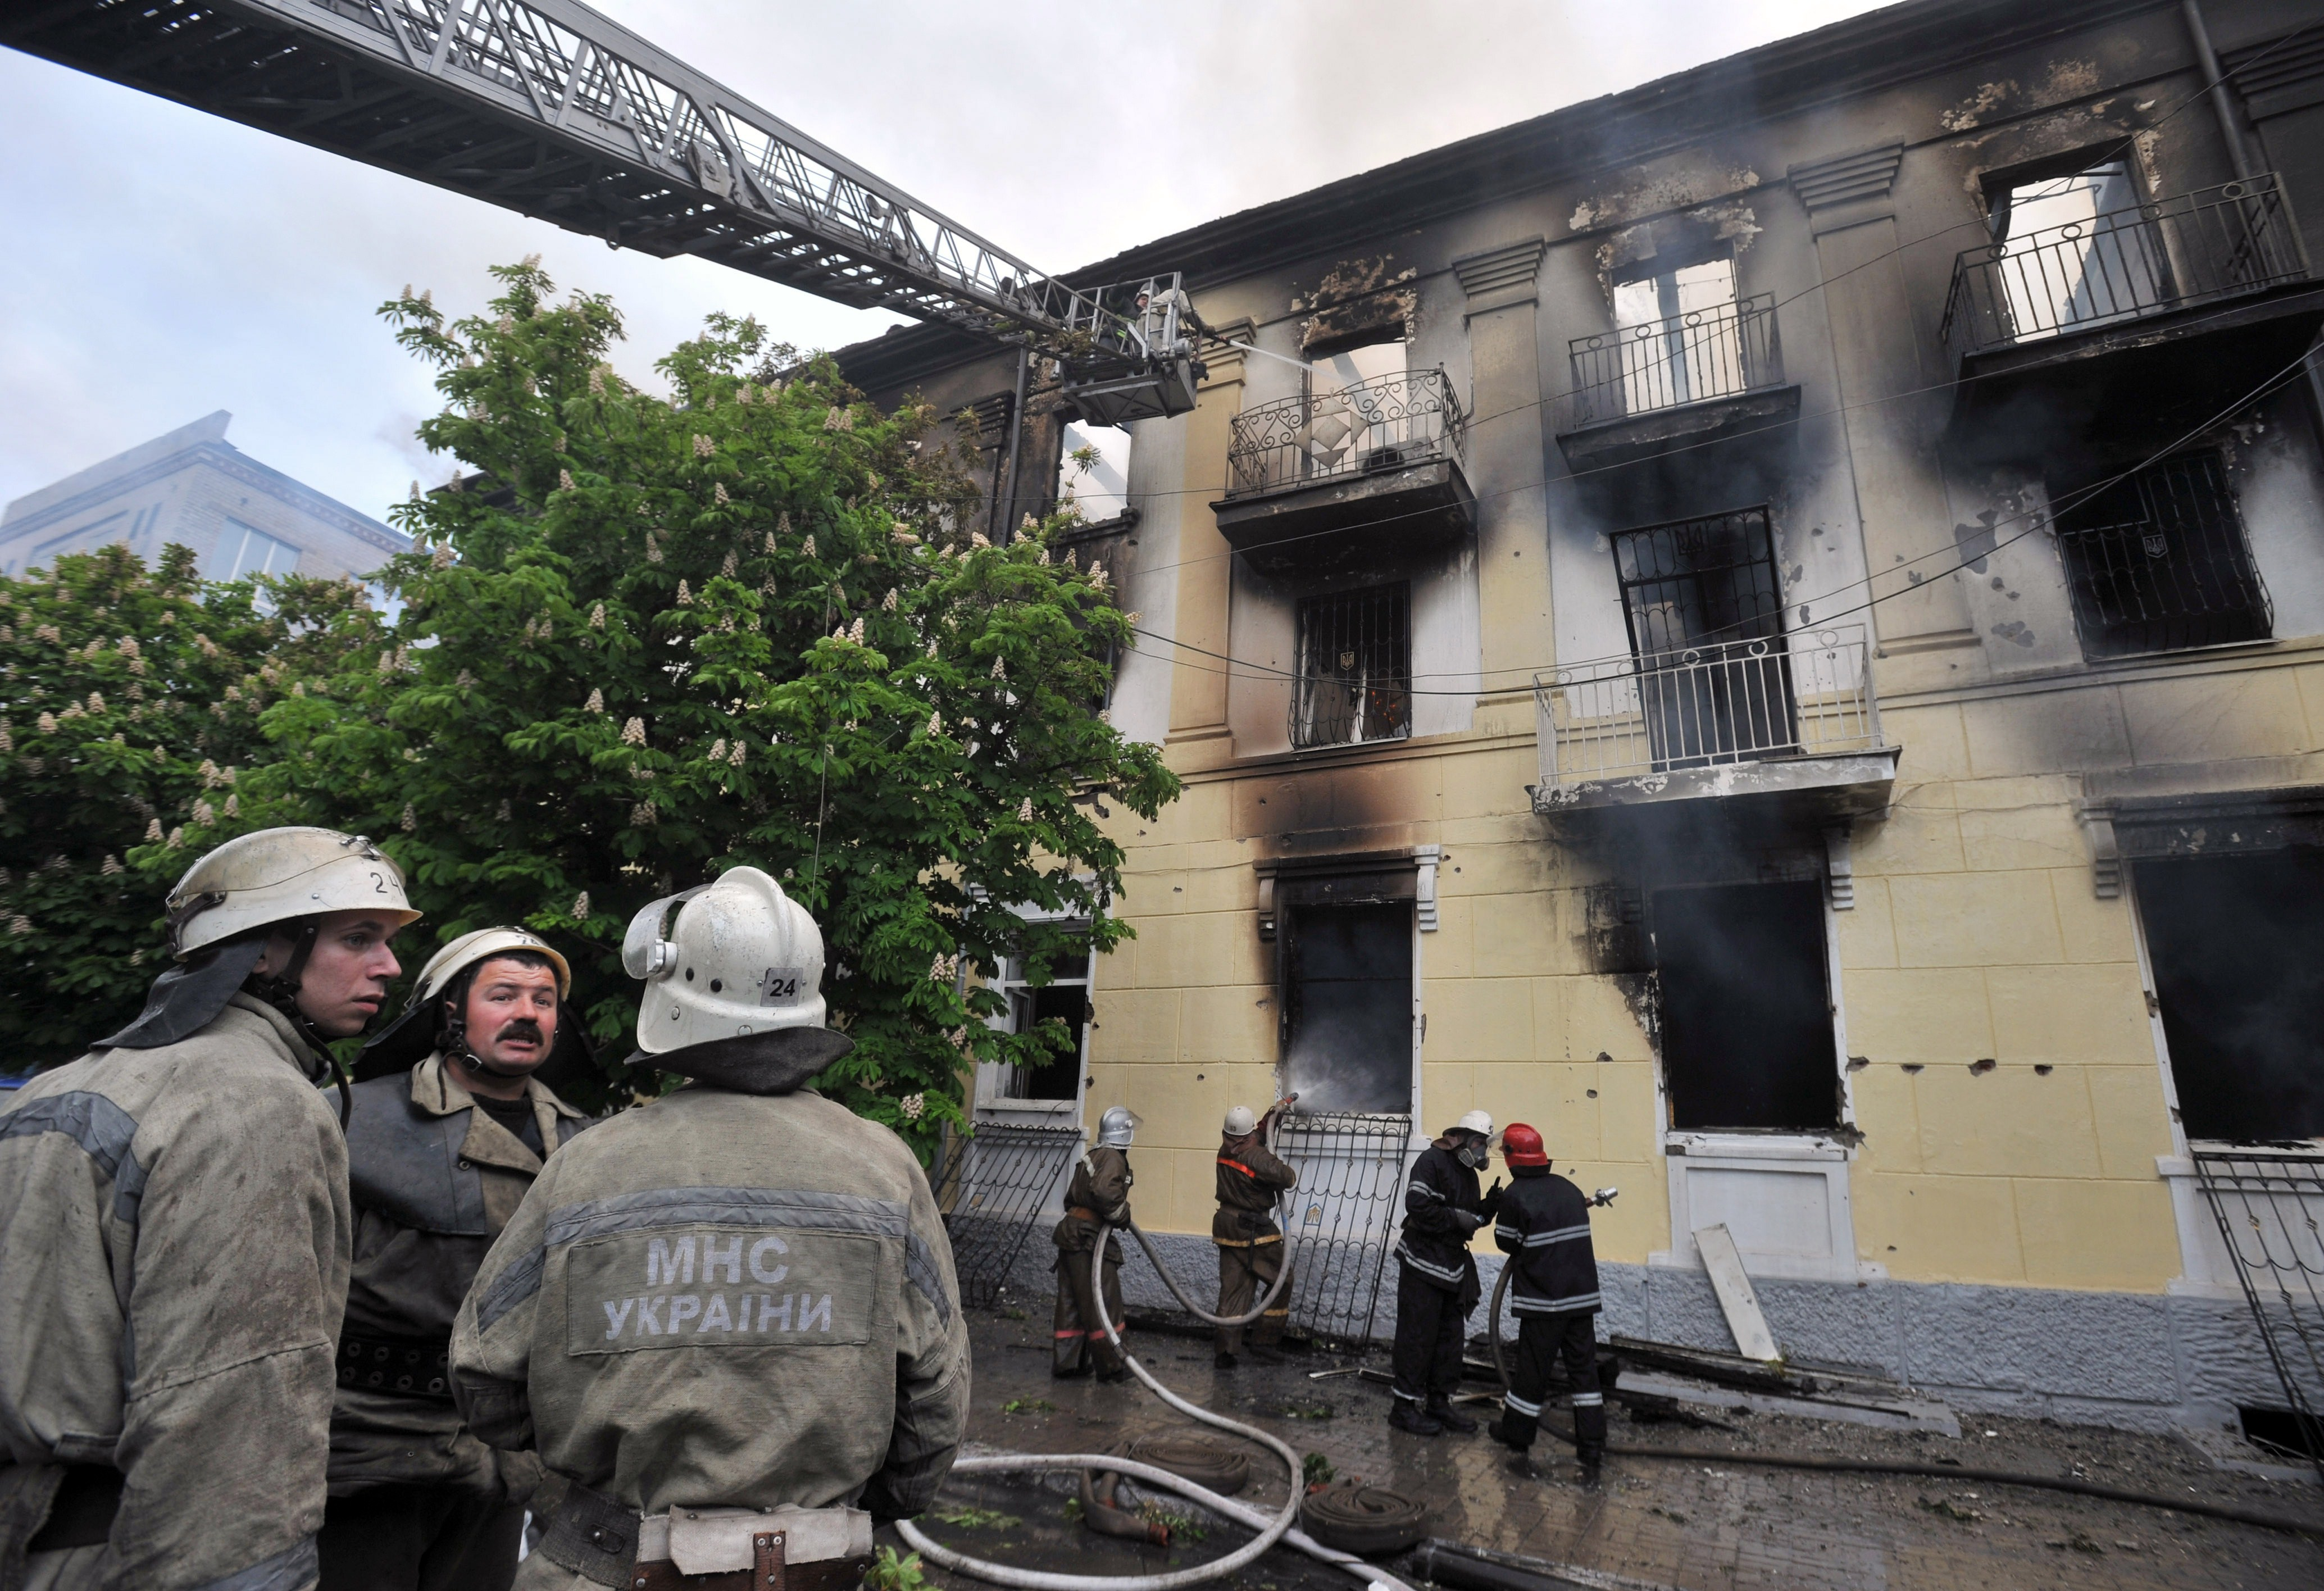 Firefighters extinguish a fire that erupted in a building following fierce fighting in the southeastern Ukrainian city of Mariupol on May 9, 2014. Fierce fighting between Ukrainian troops and pro-Russian rebels broke out in Mariupol, killing at least 21 people, all but one of them insurgents, according to the interior minister. Photo by Genya Savilov/AFP/Getty Images